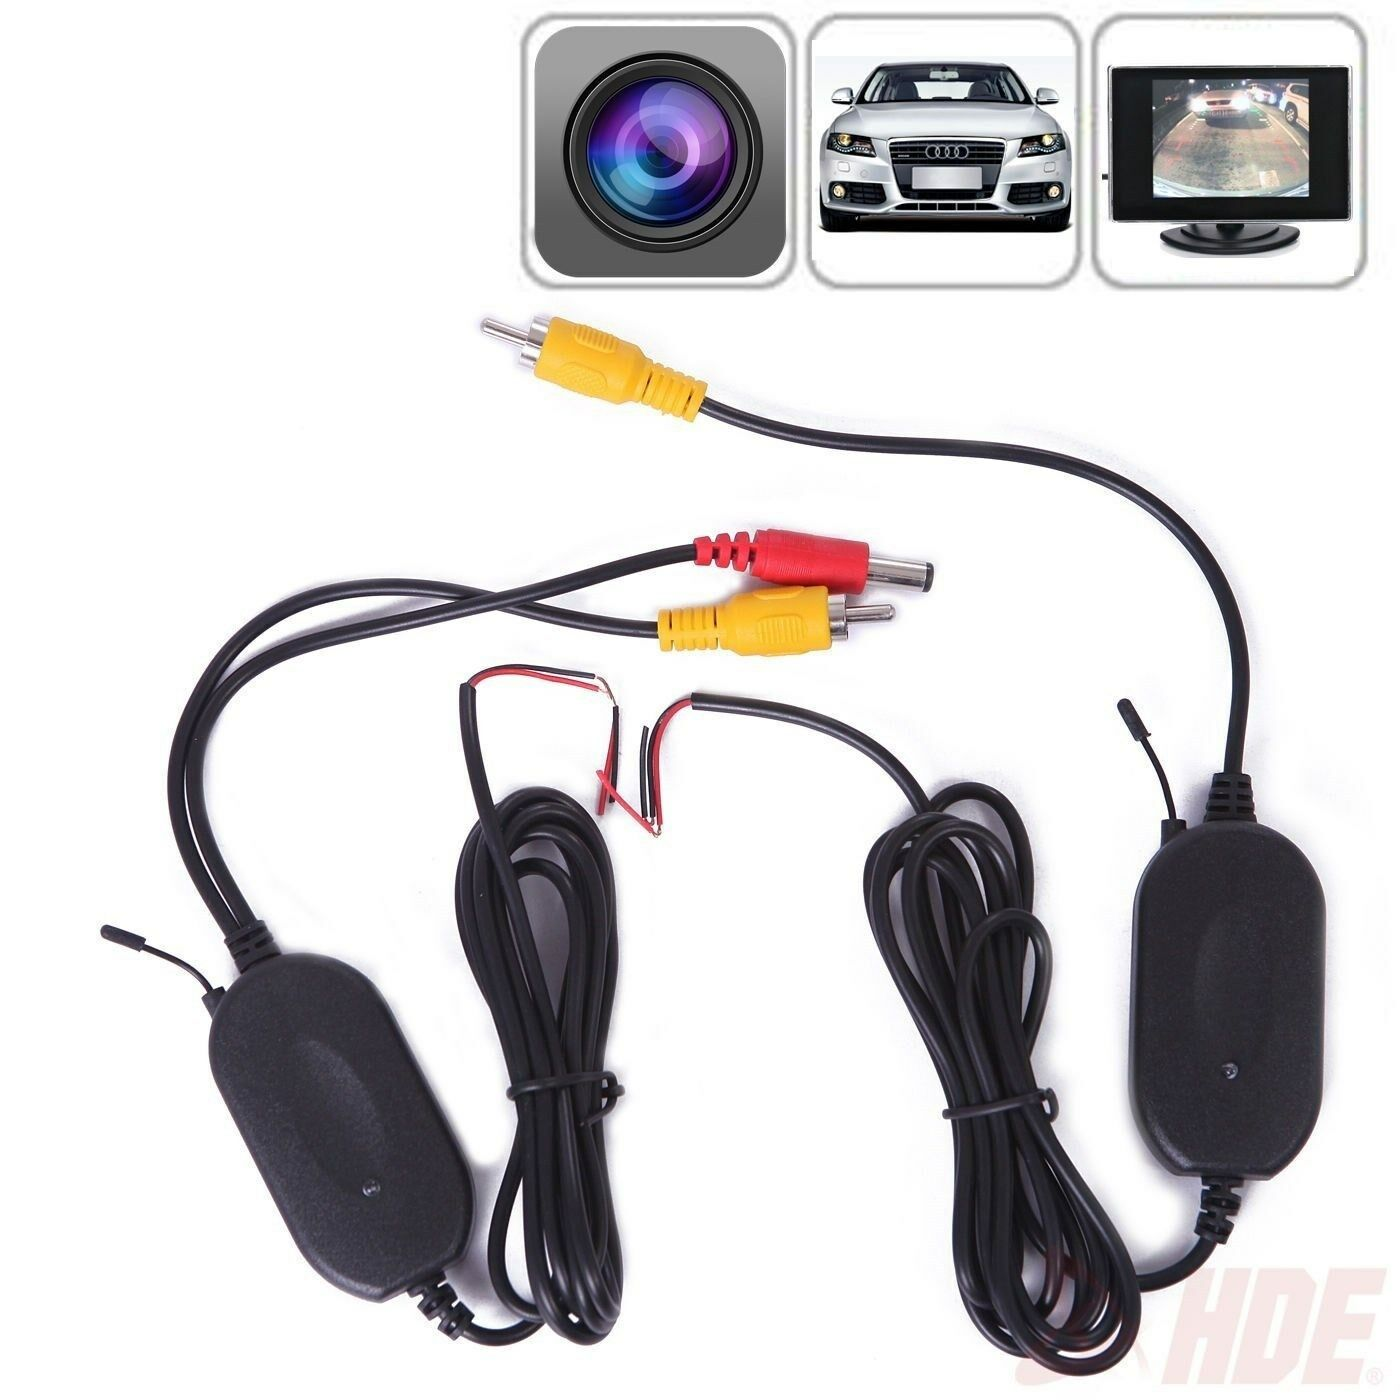 2.4G Wireless RCA Transmitter & Reciever for Car Rear View C